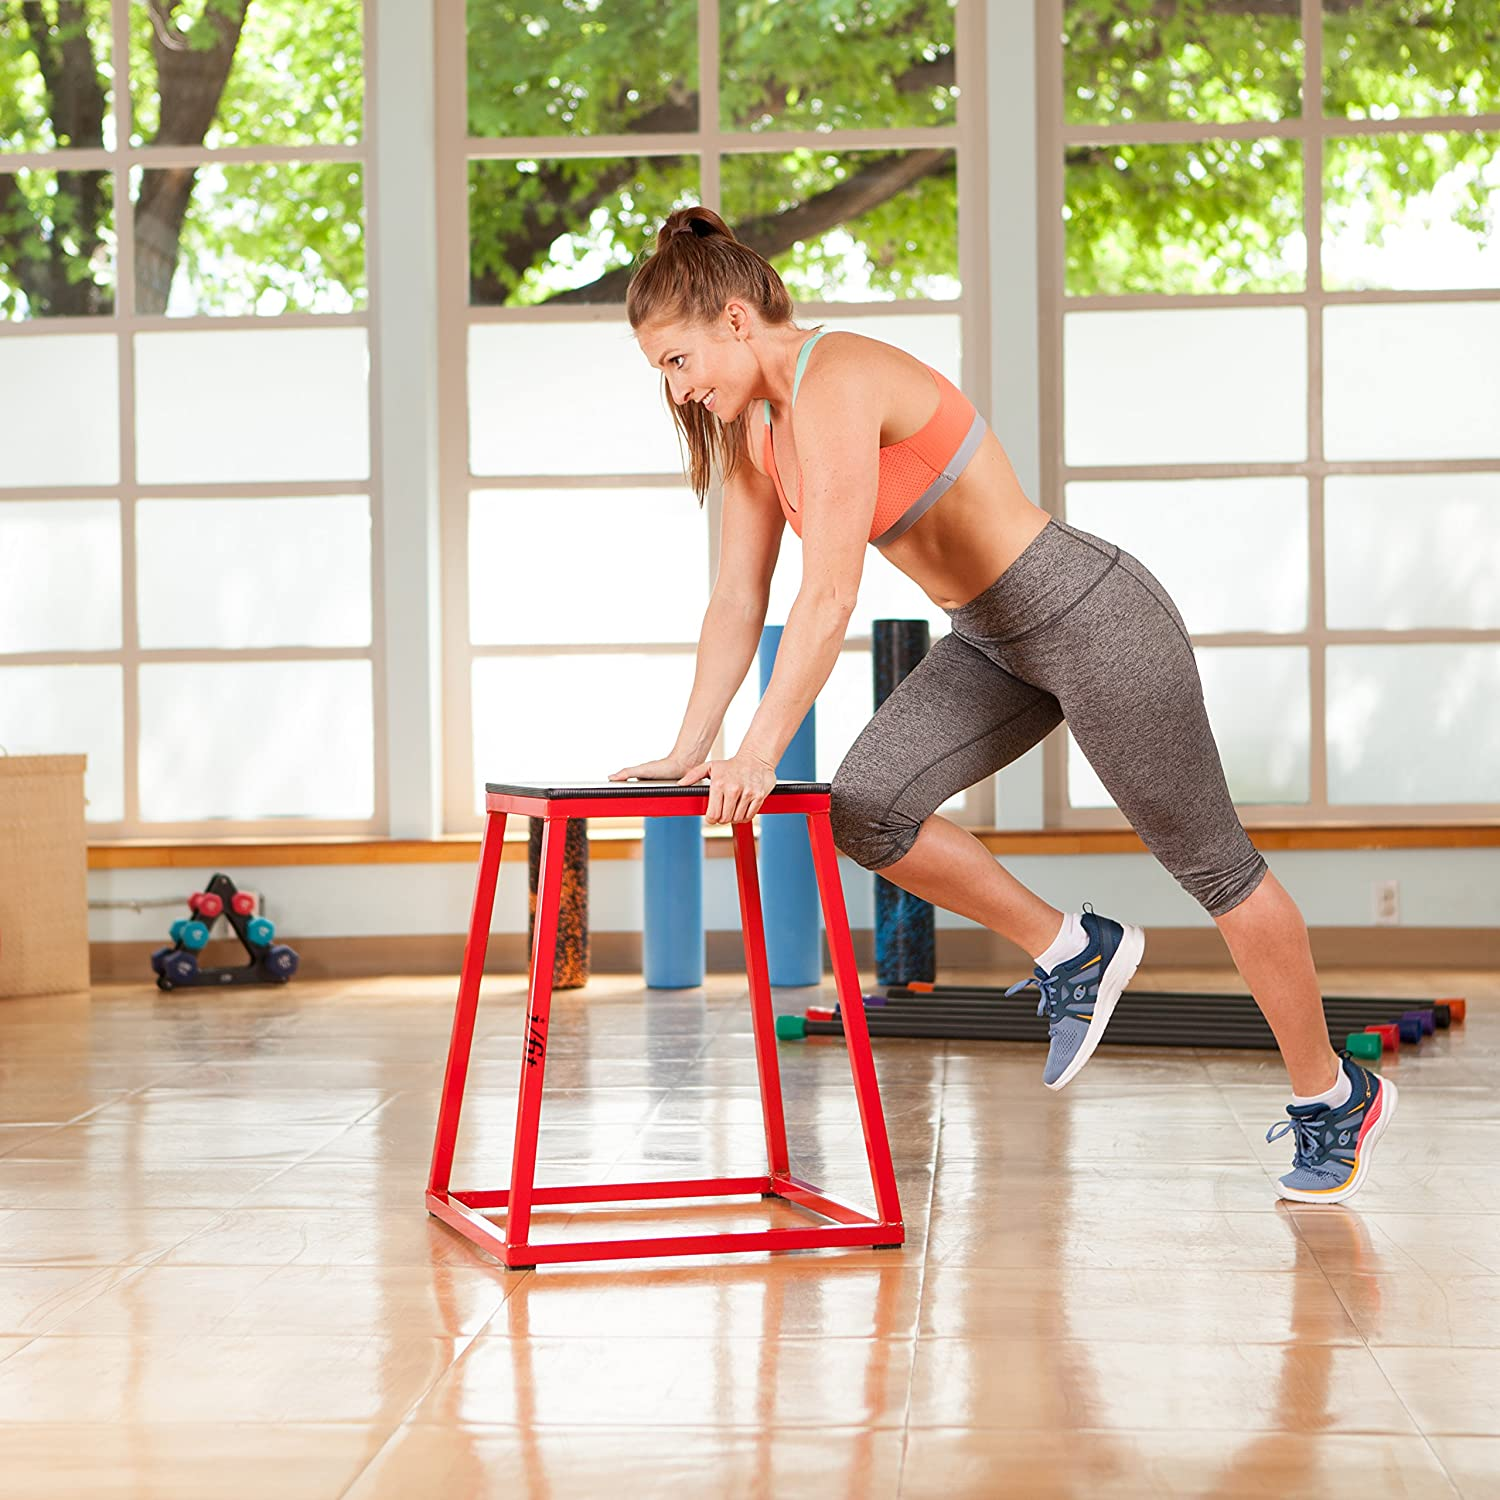 JFIT Plyometric Jump Boxes - BEST OVERALL